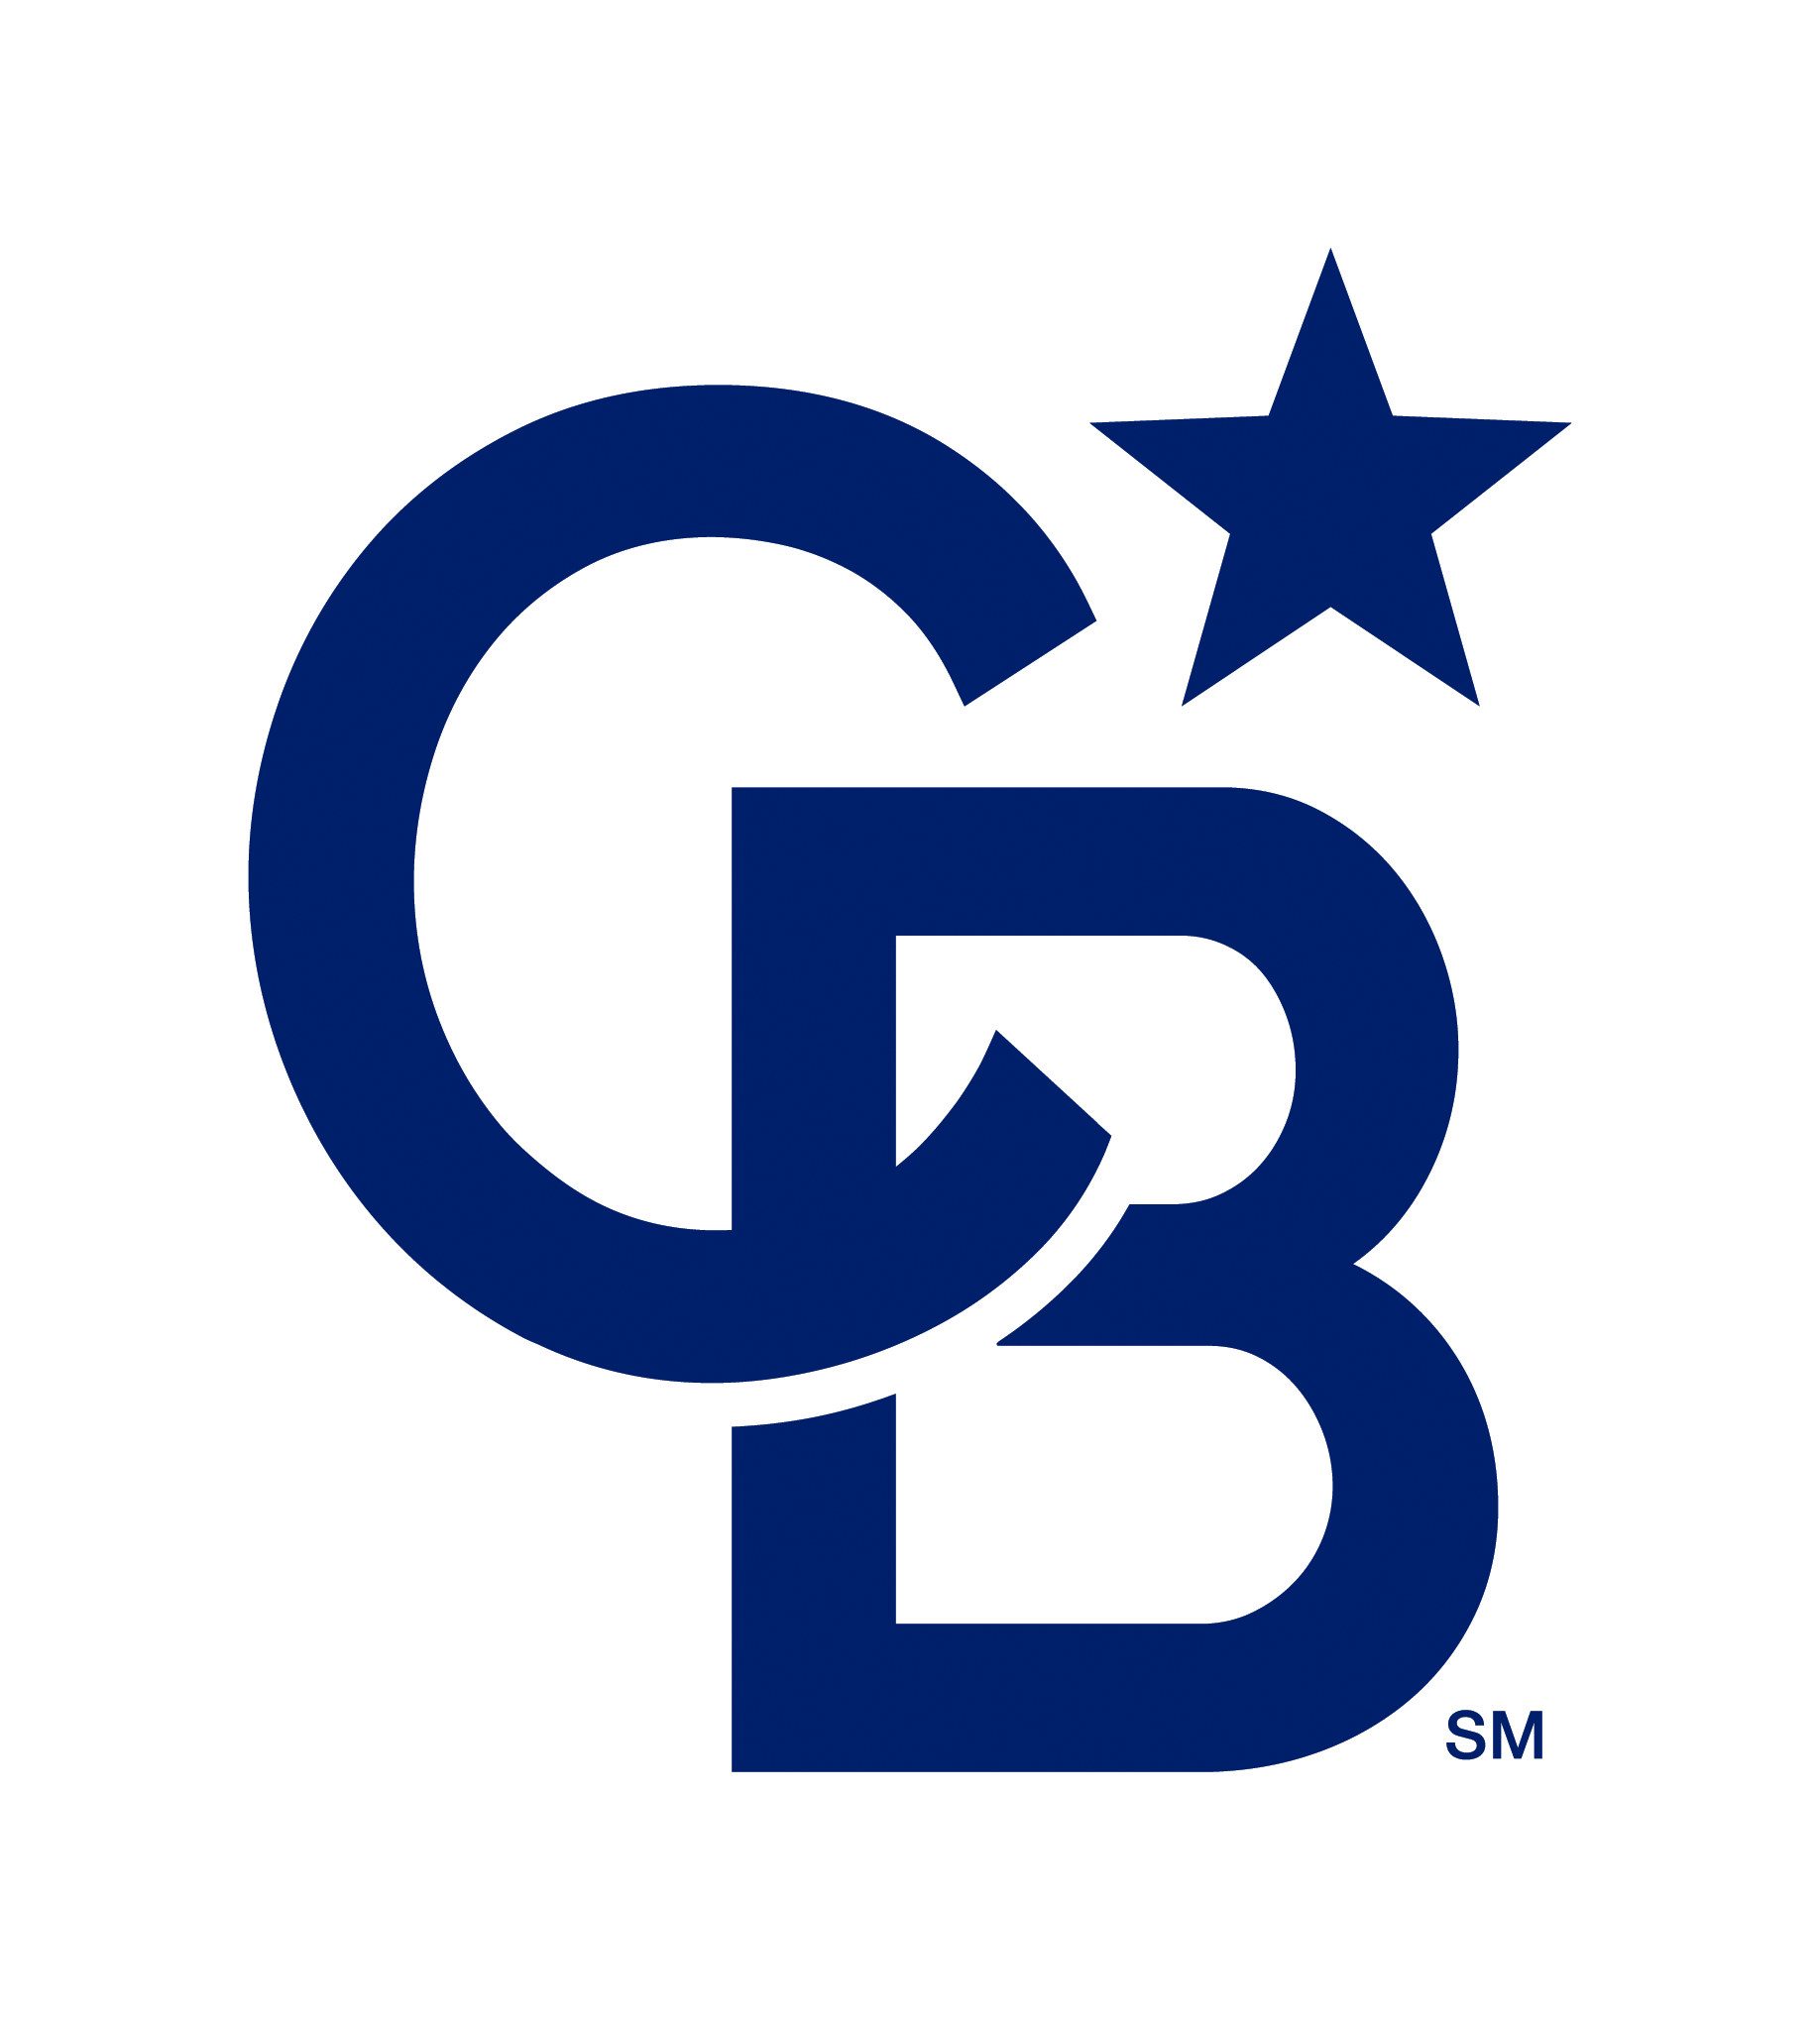 Brand New: New Logo for Coldwell Banker by Siltanen & Partners.